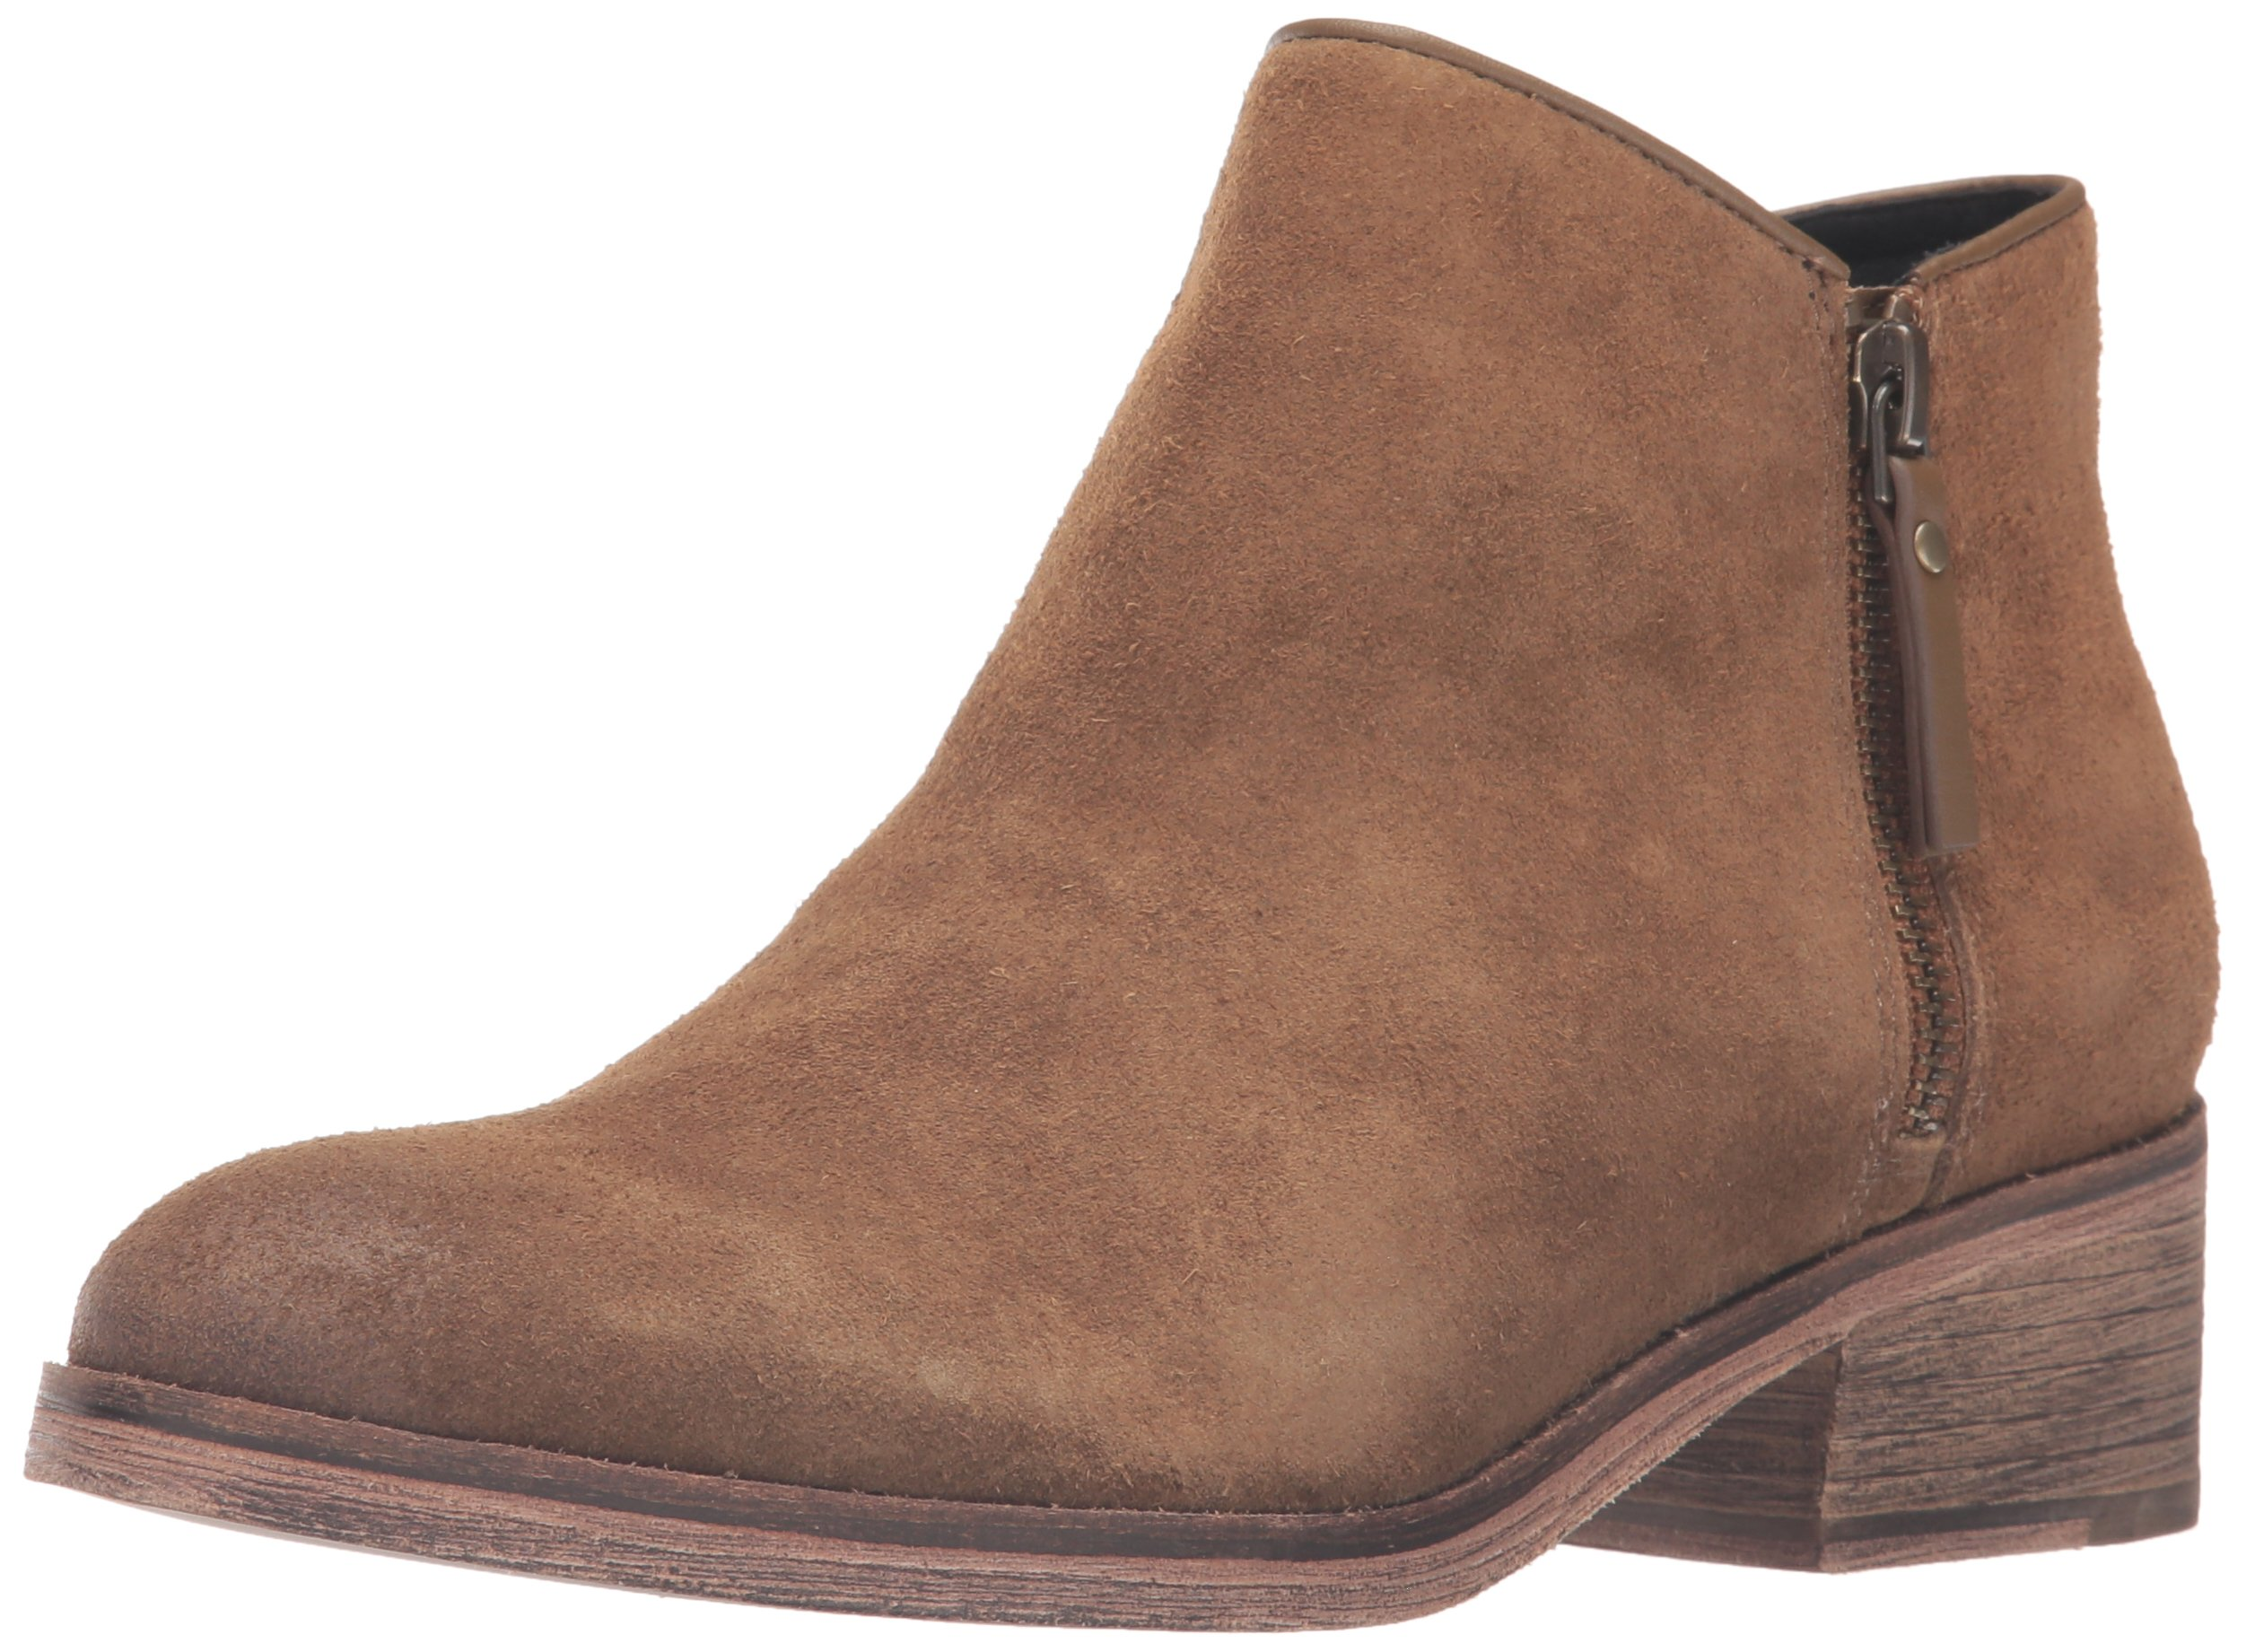 Cole Haan Women's Hayes Flat Ankle Bootie, Olive Suede, 6.5 B US